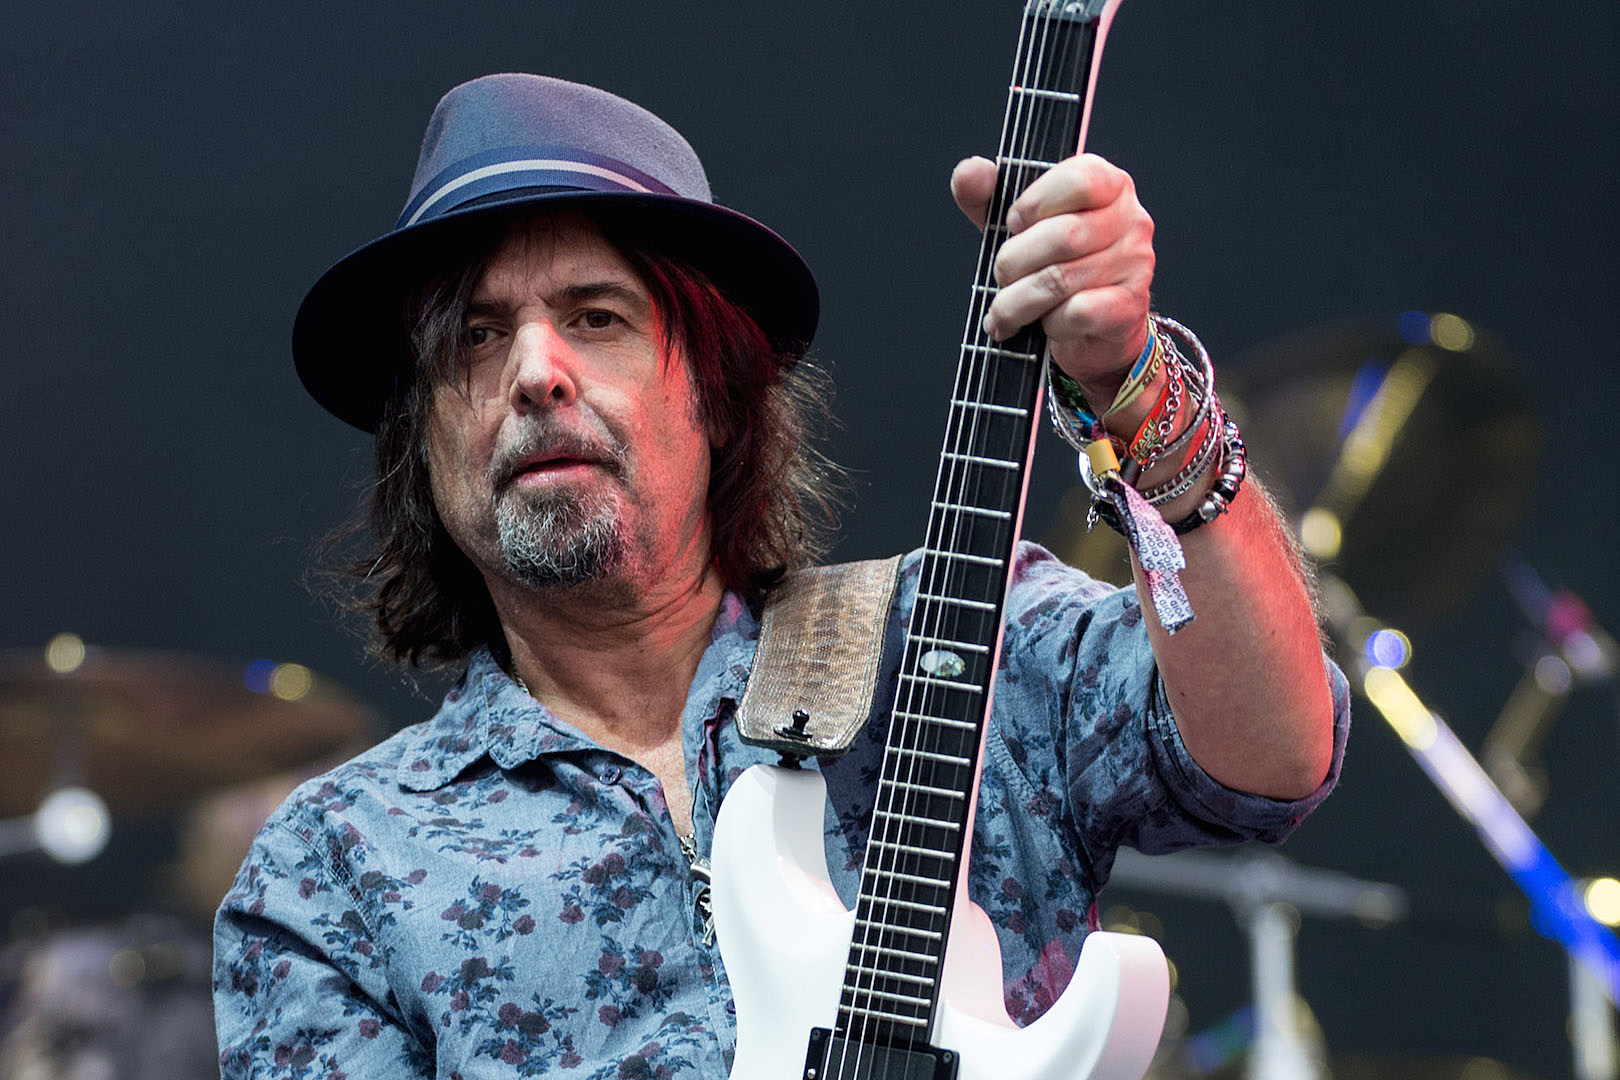 Phil Campbell Hopes to Have Solo Album Out 'Sometime' in 2018